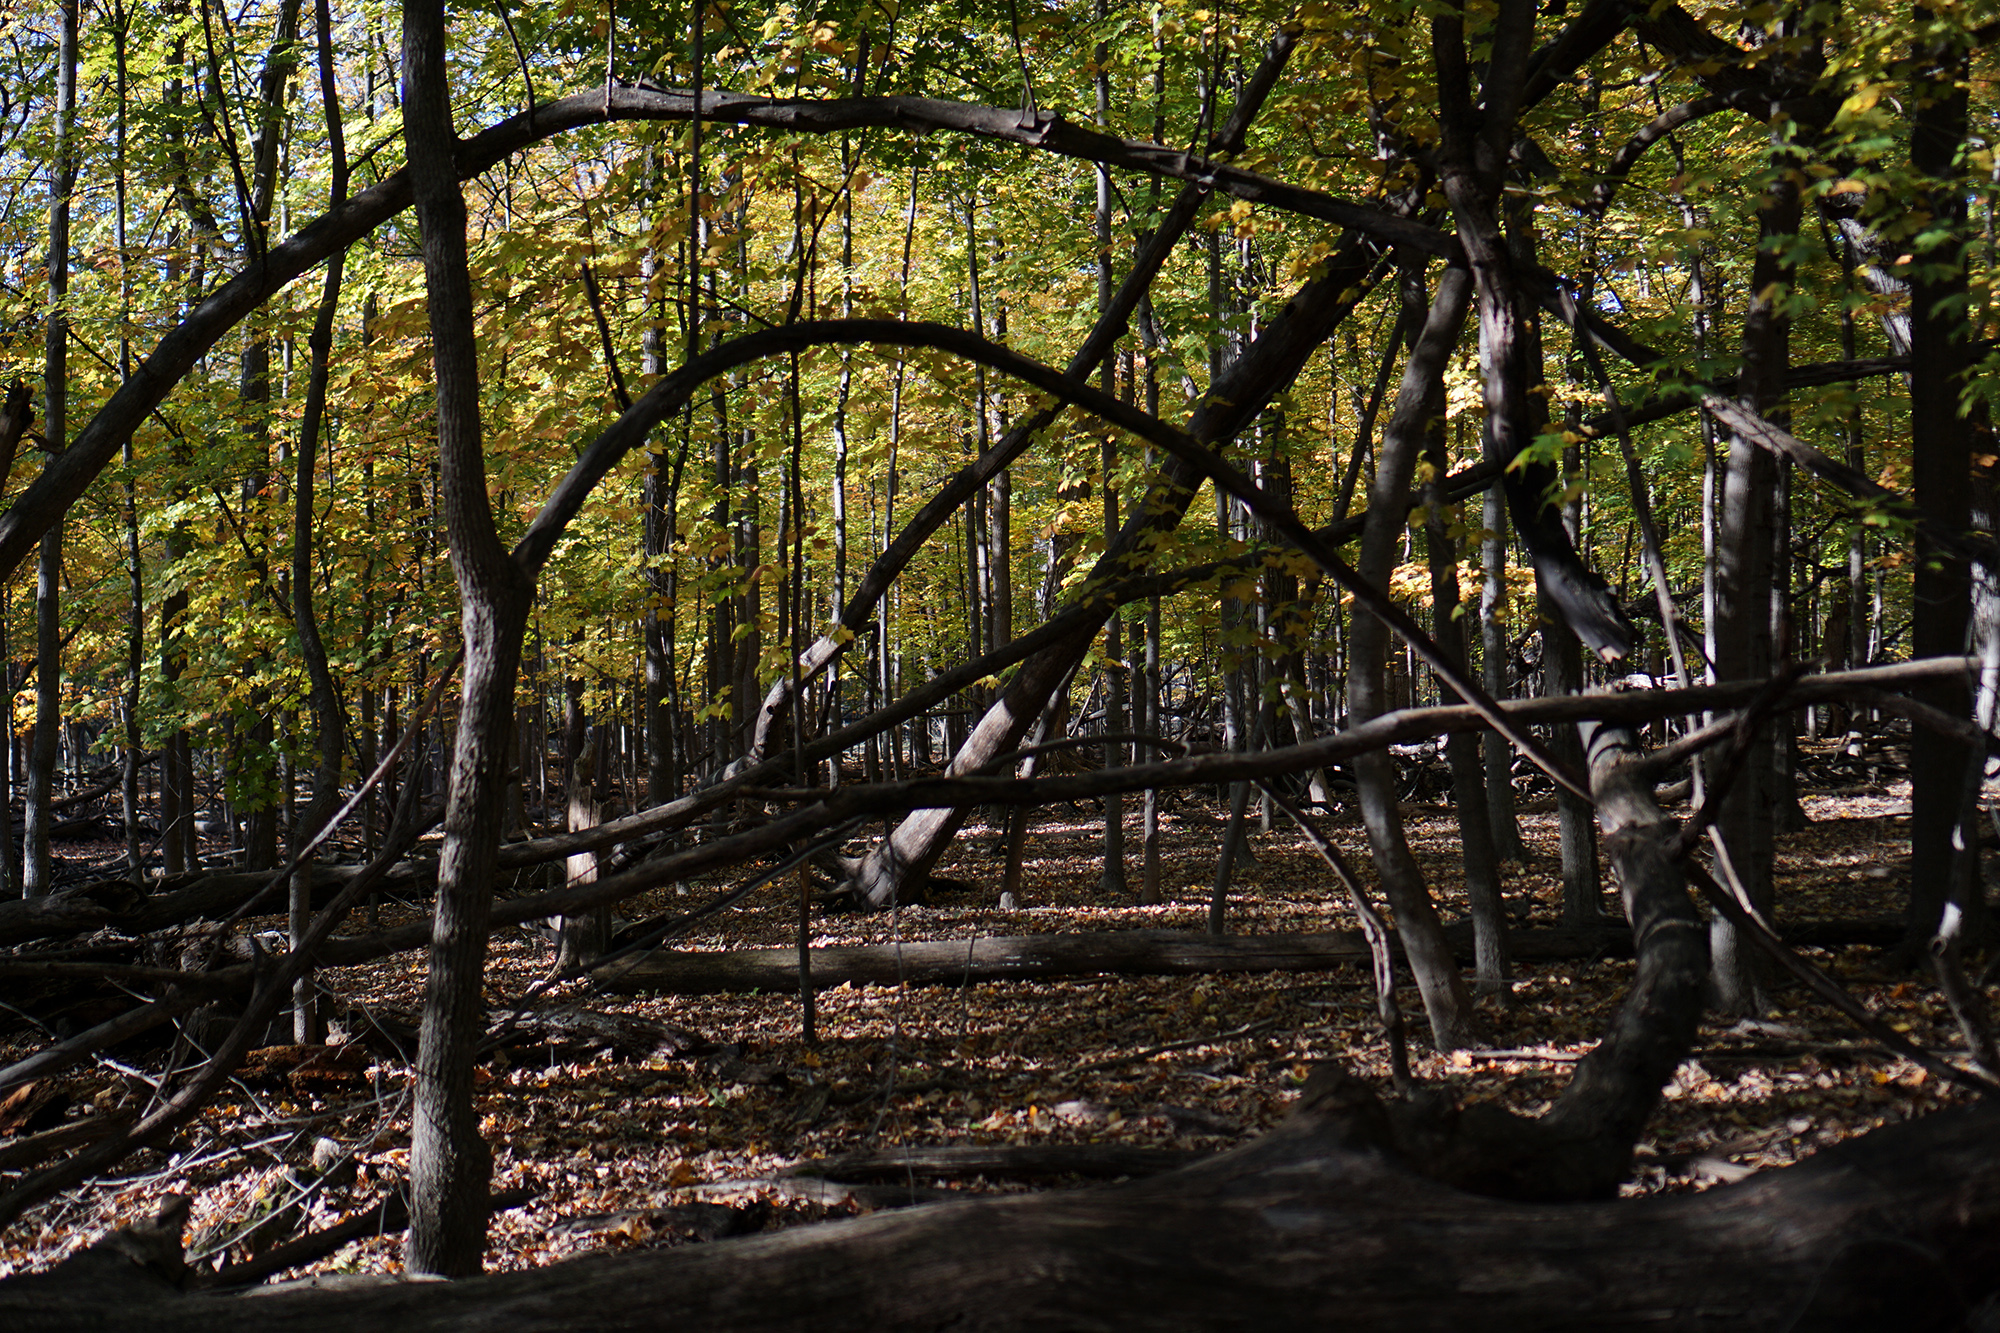 Bent and broken trees in Miami Woods, Morton Grove Illinois / Darker than Green